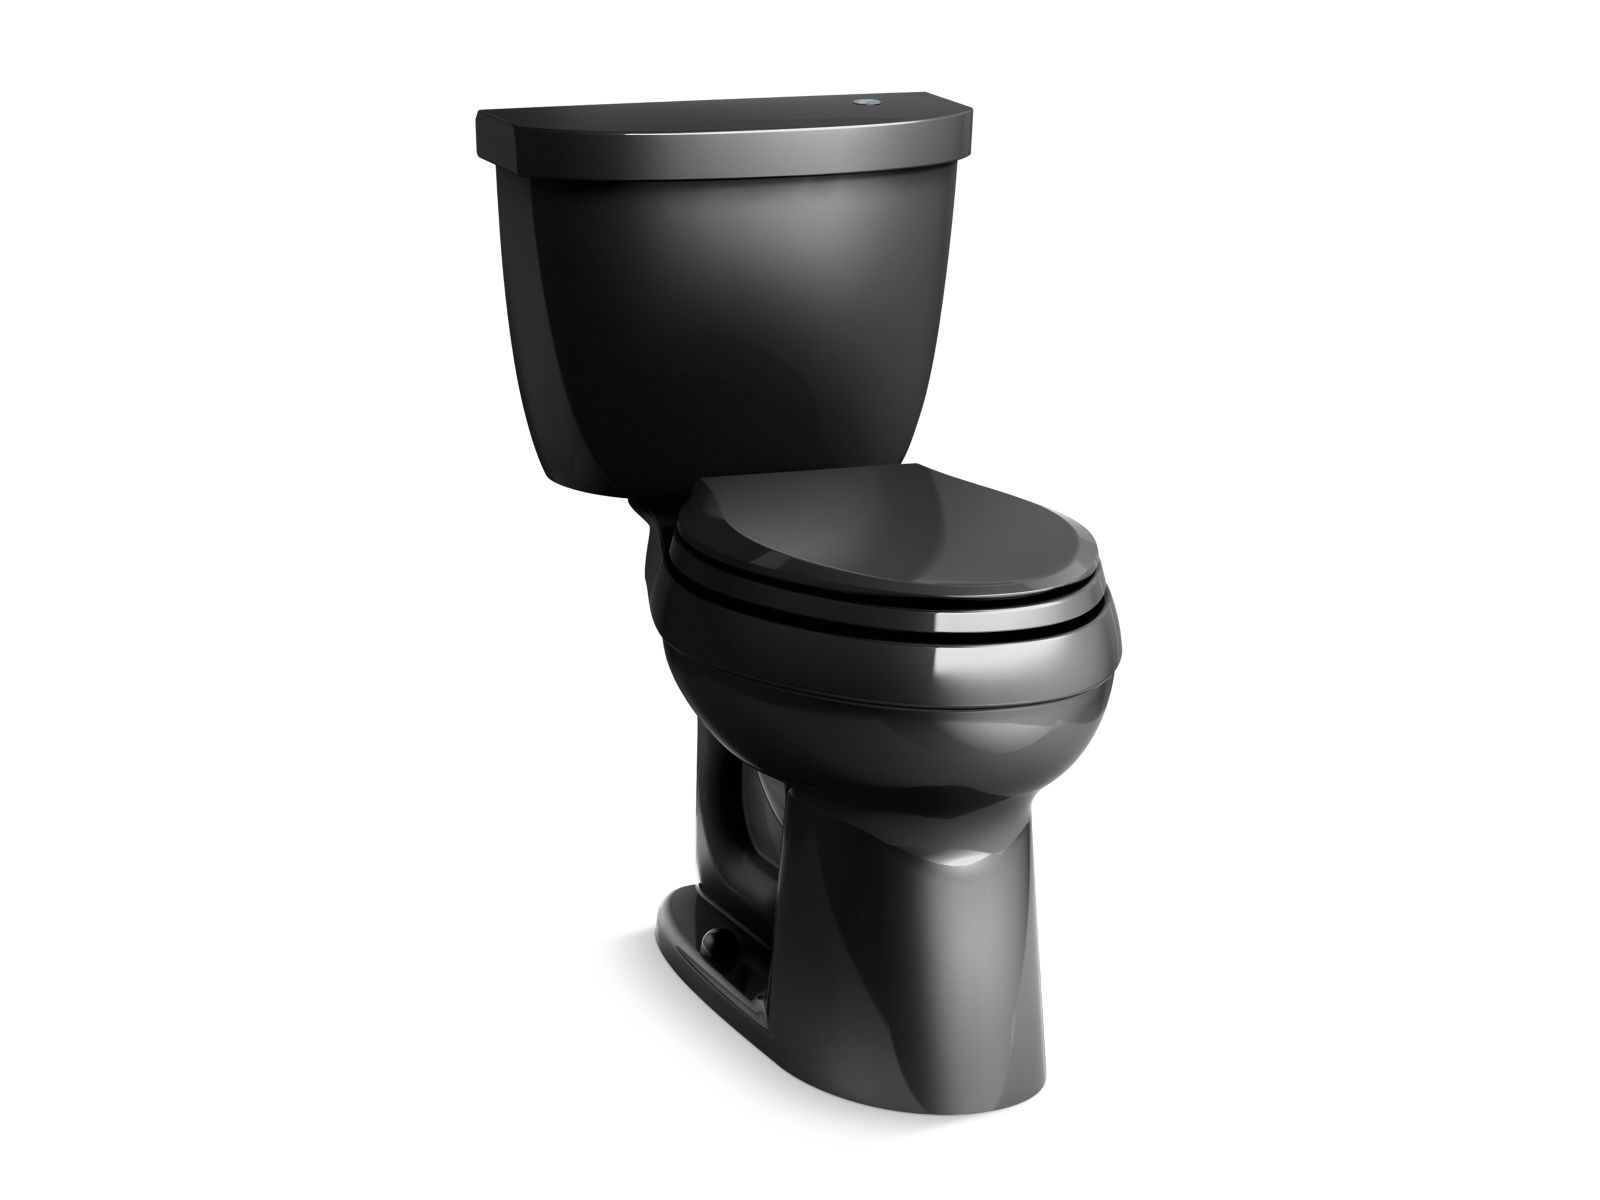 Kohler Cimarron® K-6418-7 Touchless Comfort Height® two-piece elongated 1.28 gpf toilet with AquaPiston® flushing technology Black Black